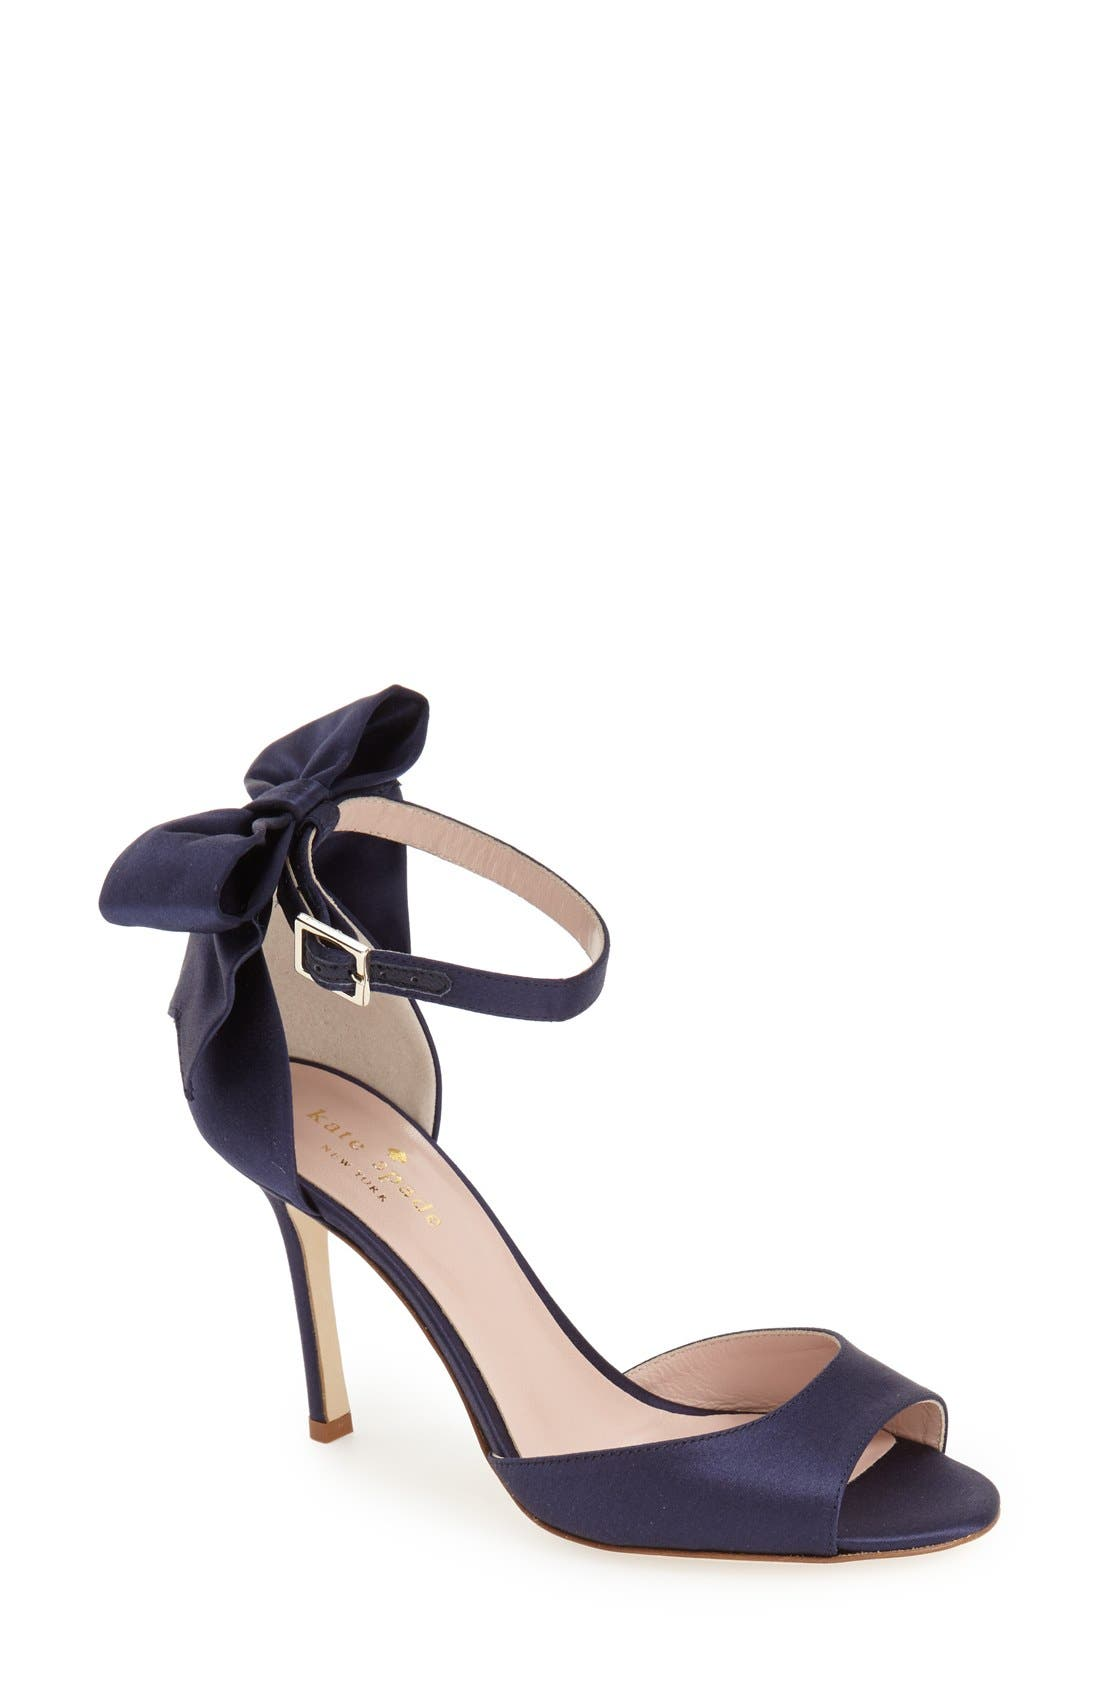 Alternate Image 1 Selected - kate spade new york 'izzie' sandal (Women)